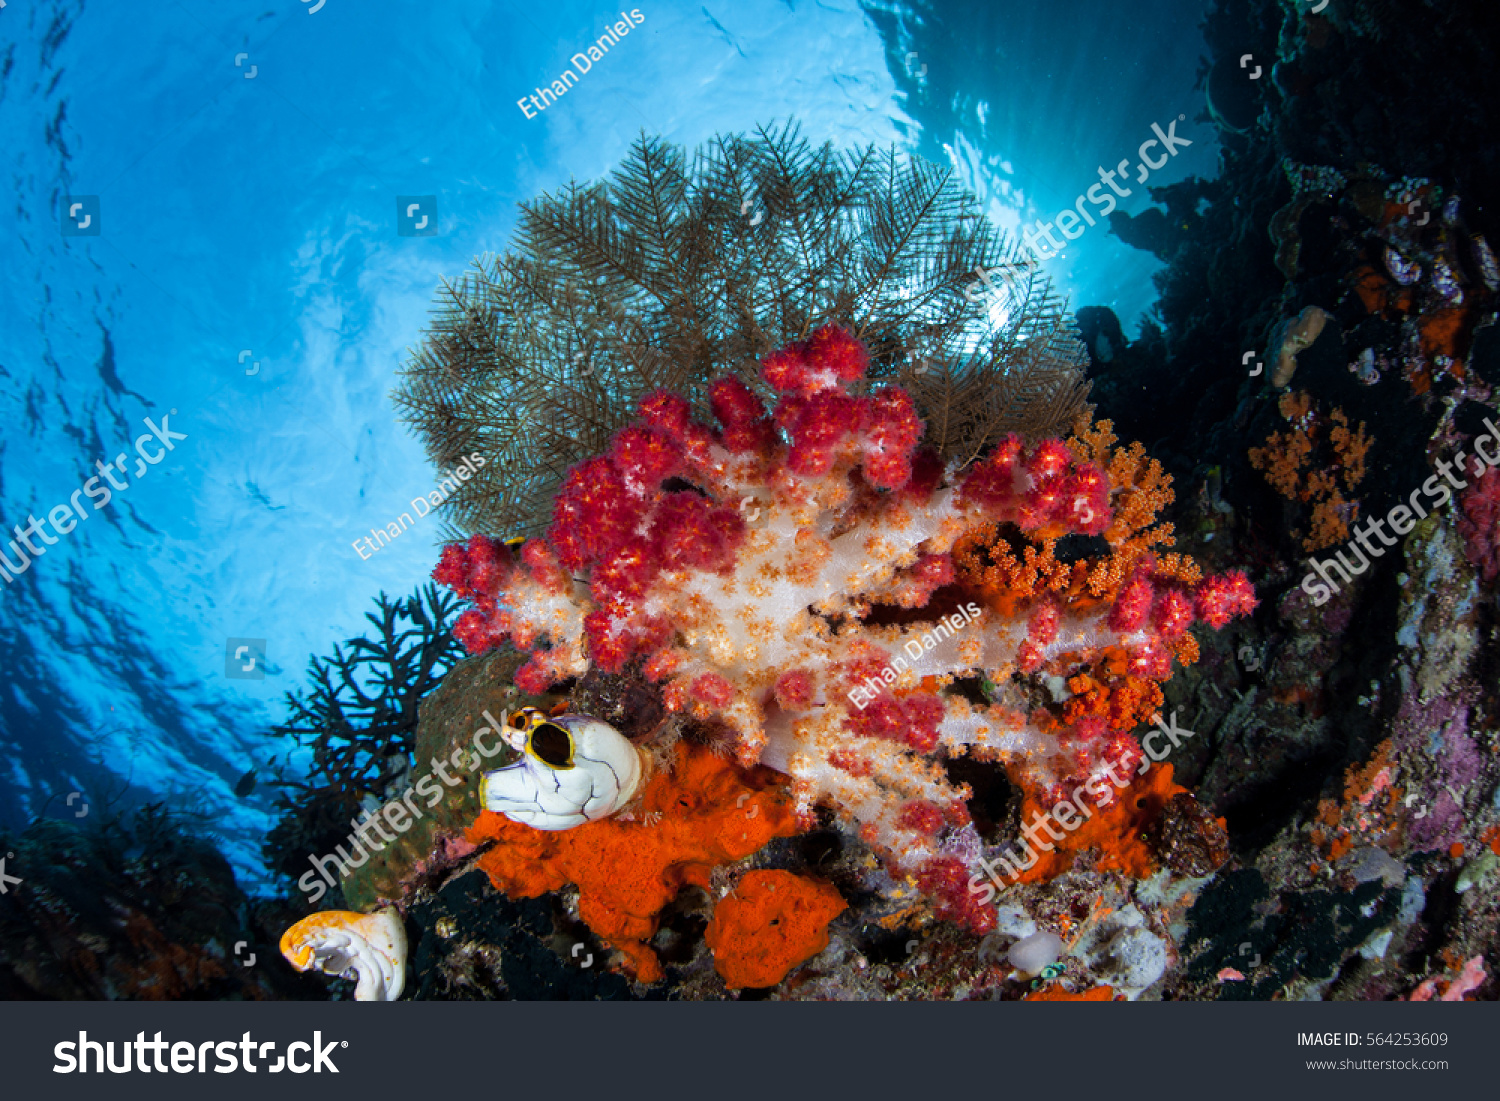 Colorful Soft Corals Other Invertebrates Grow Stock Photo 564253609 ...